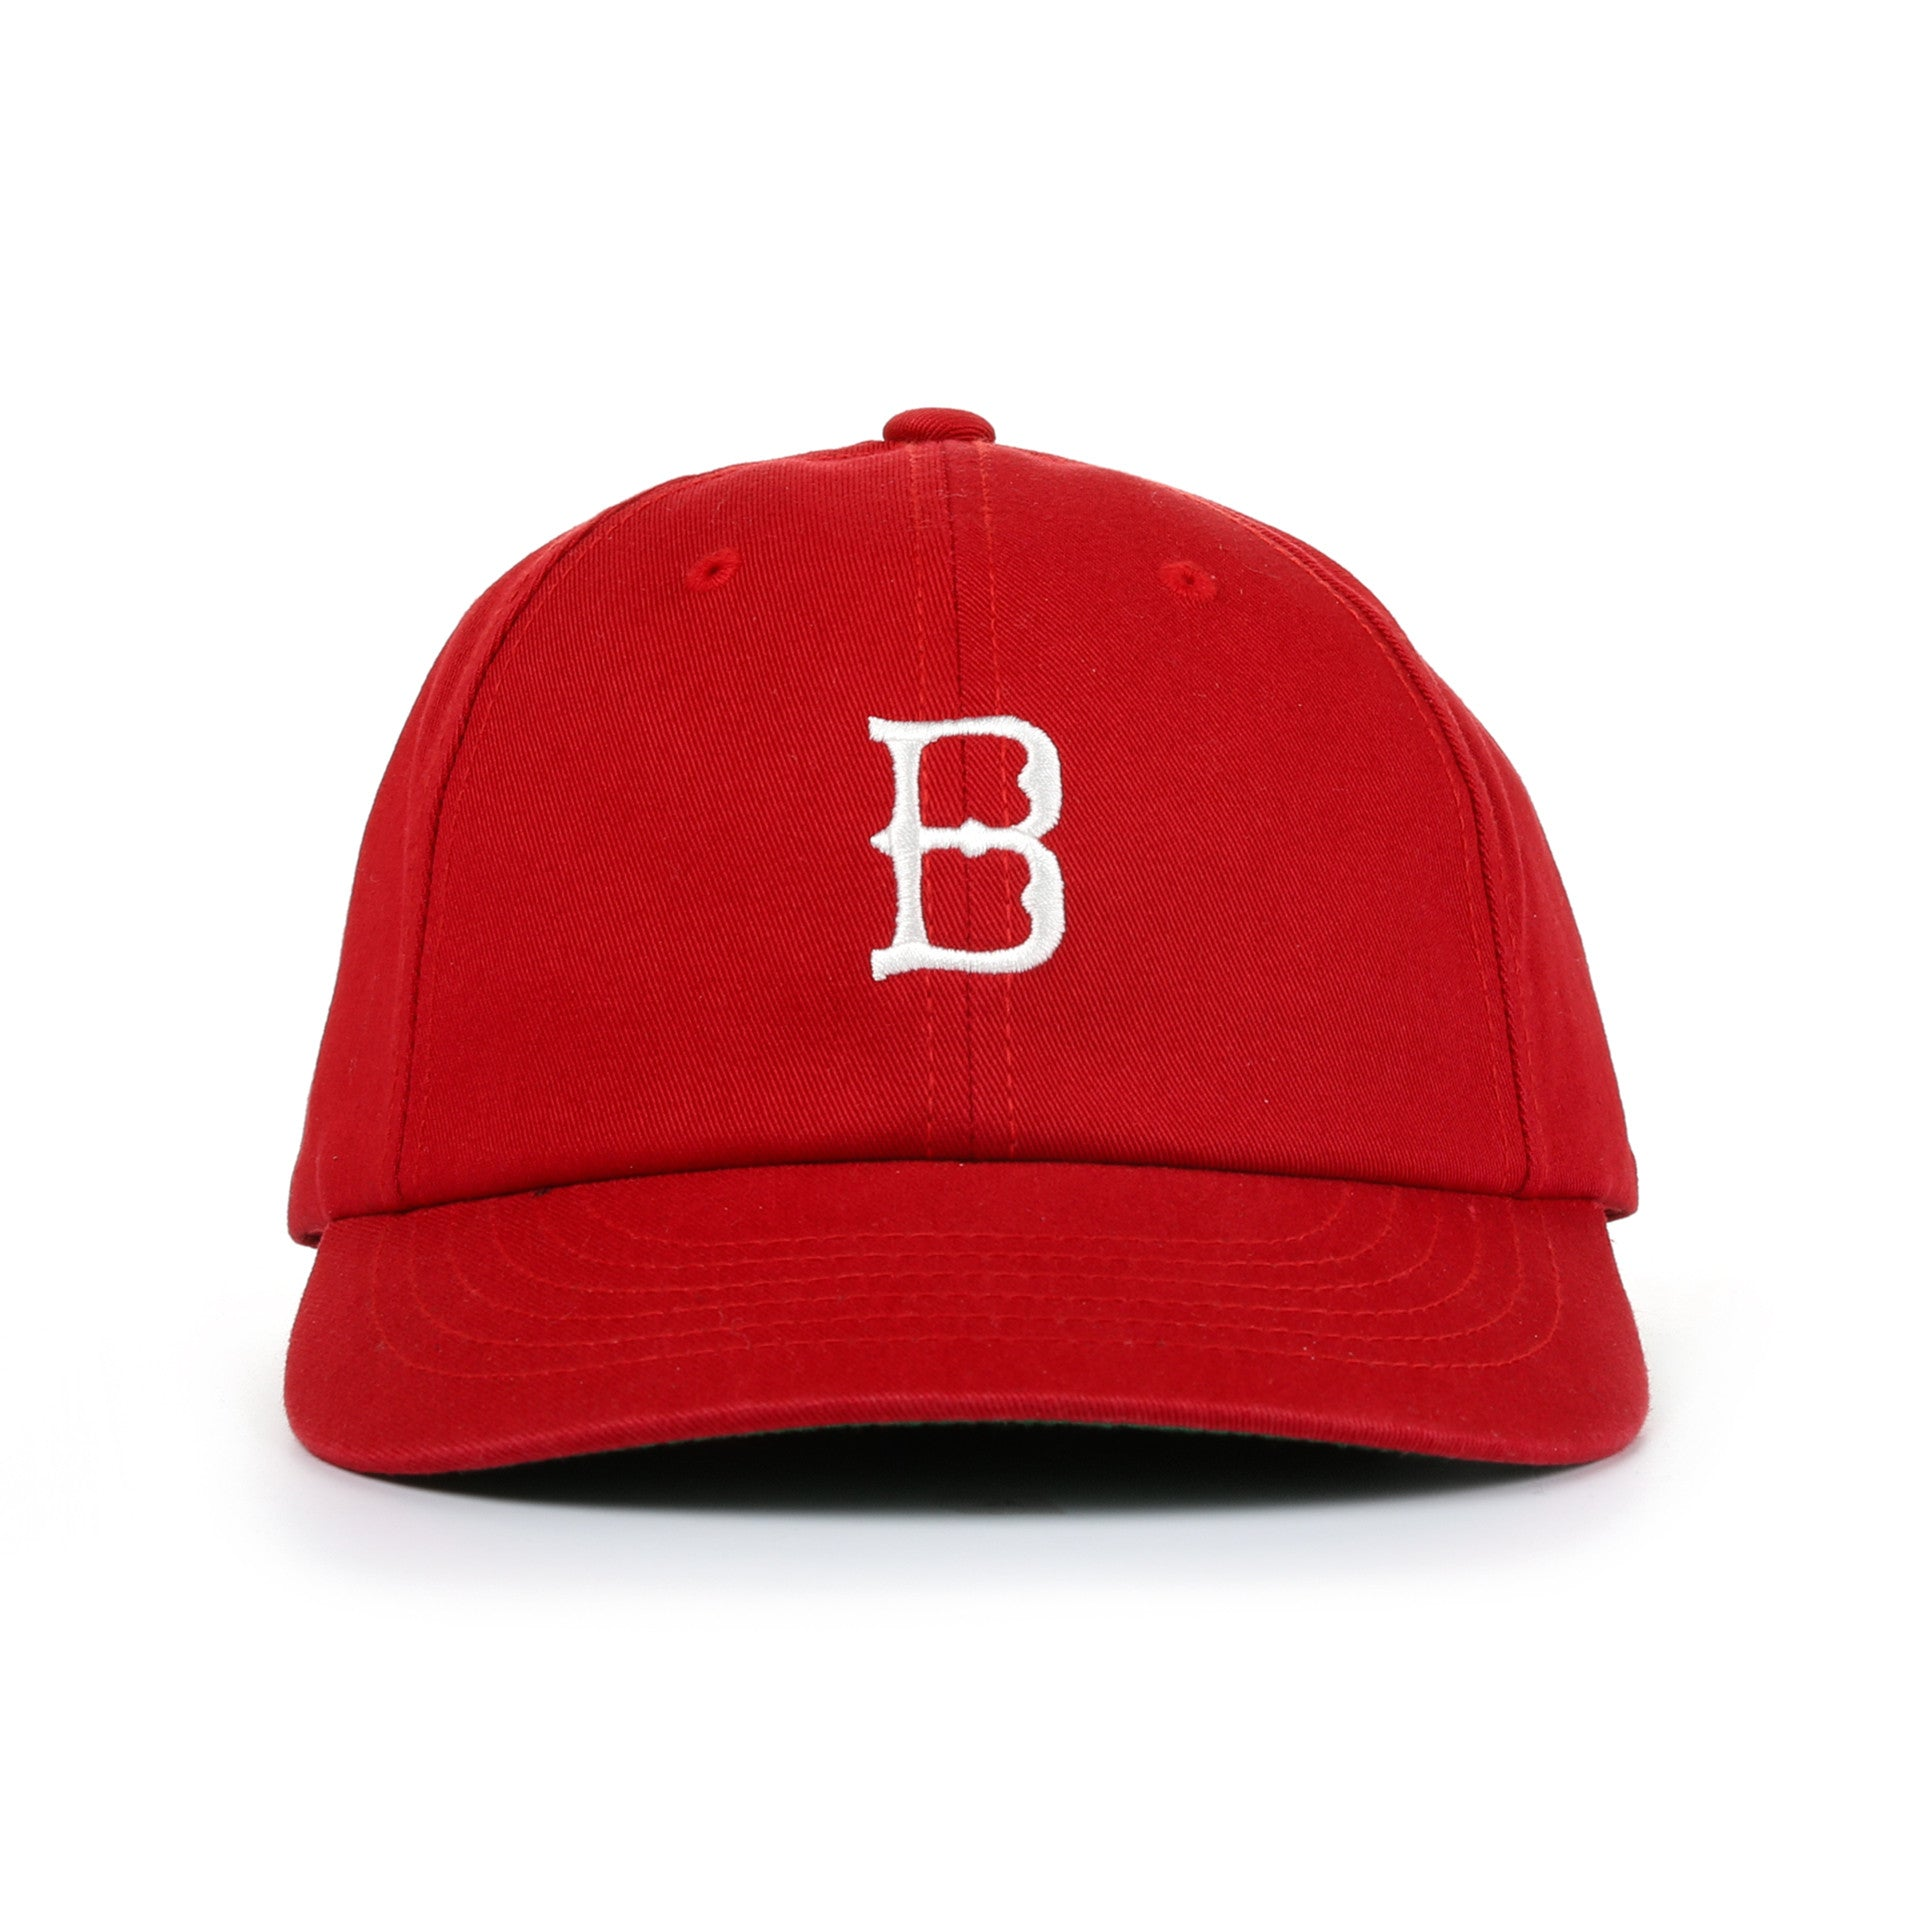 dfe7e677a77cc coupon code for brixton red snapback 6b576 90aa4